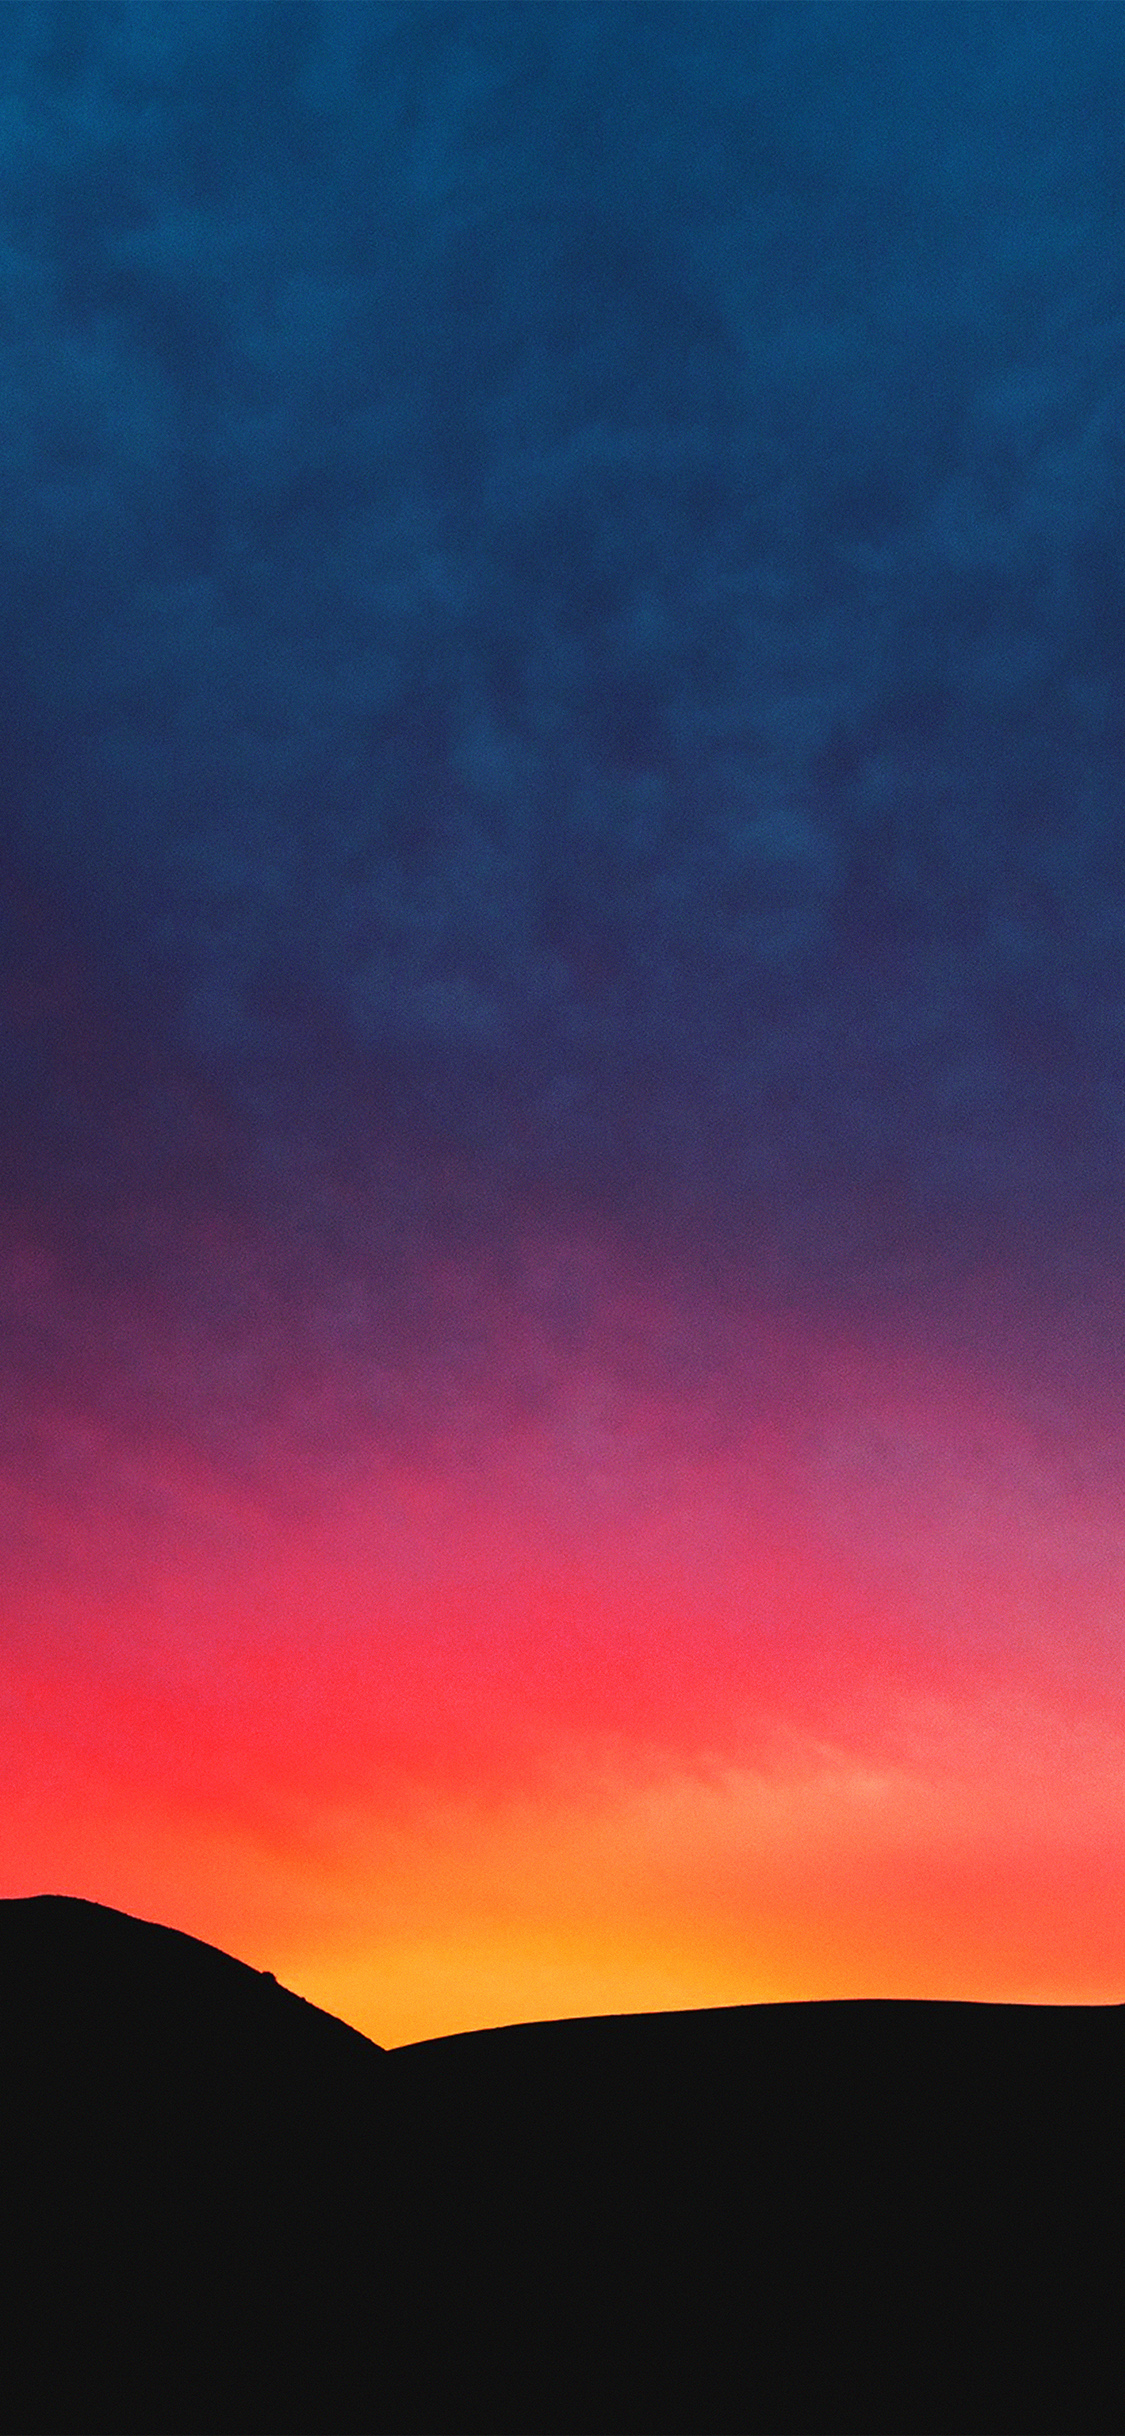 iPhoneXpapers.com-Apple-iPhone-wallpaper-nk95-sky-sunshine-morning-red-blue-nature-hot